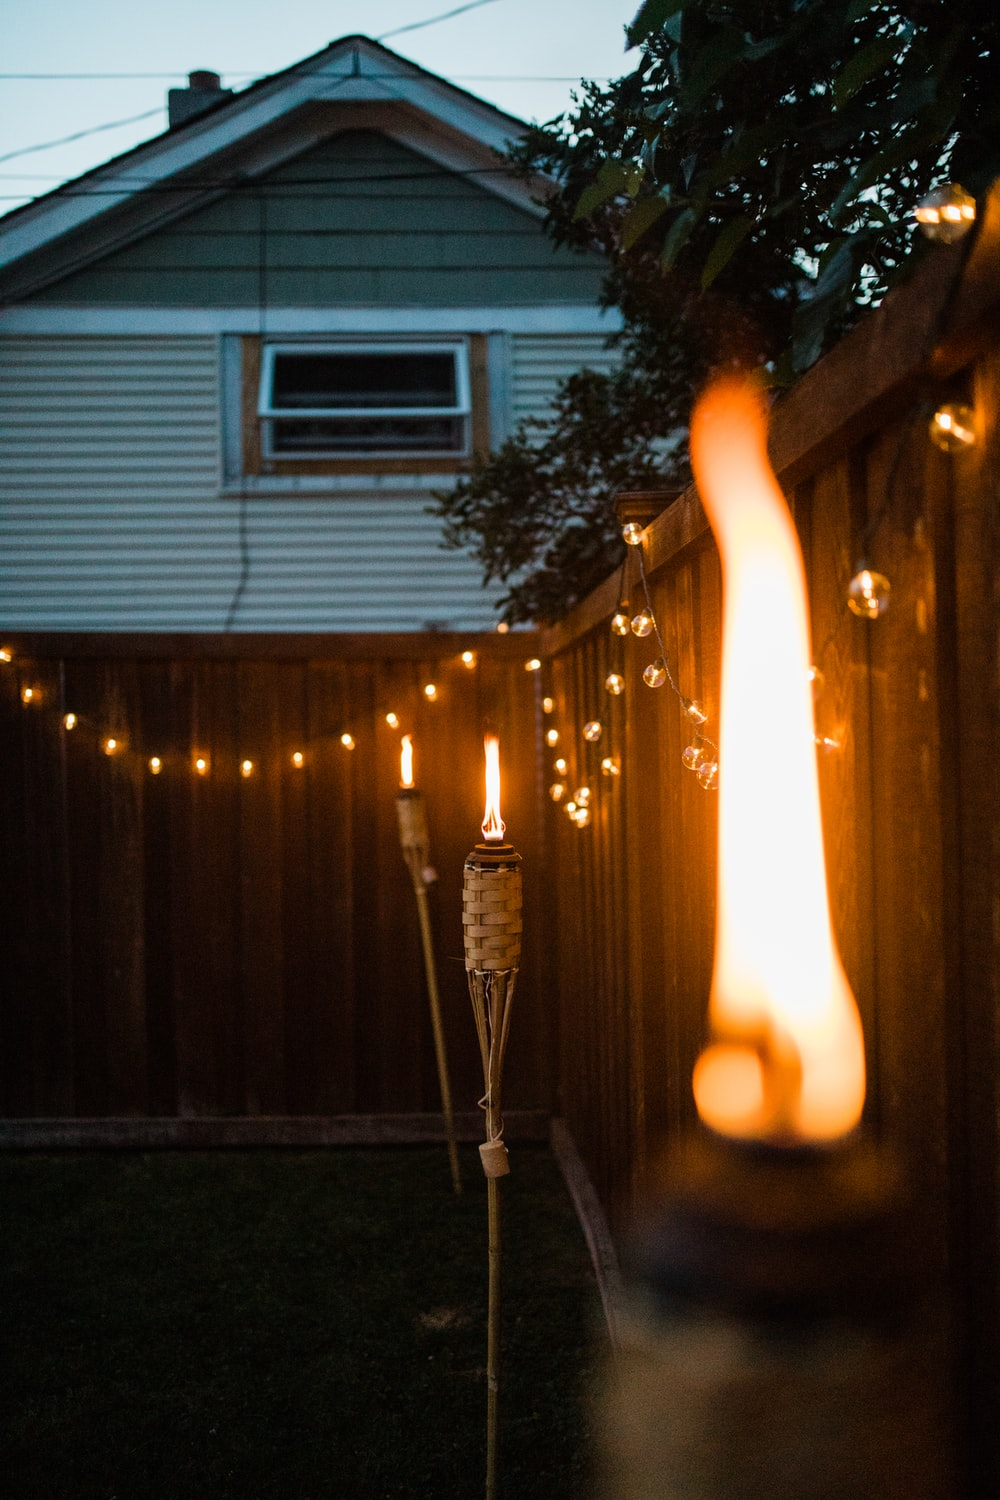 lighted candles on street during night time